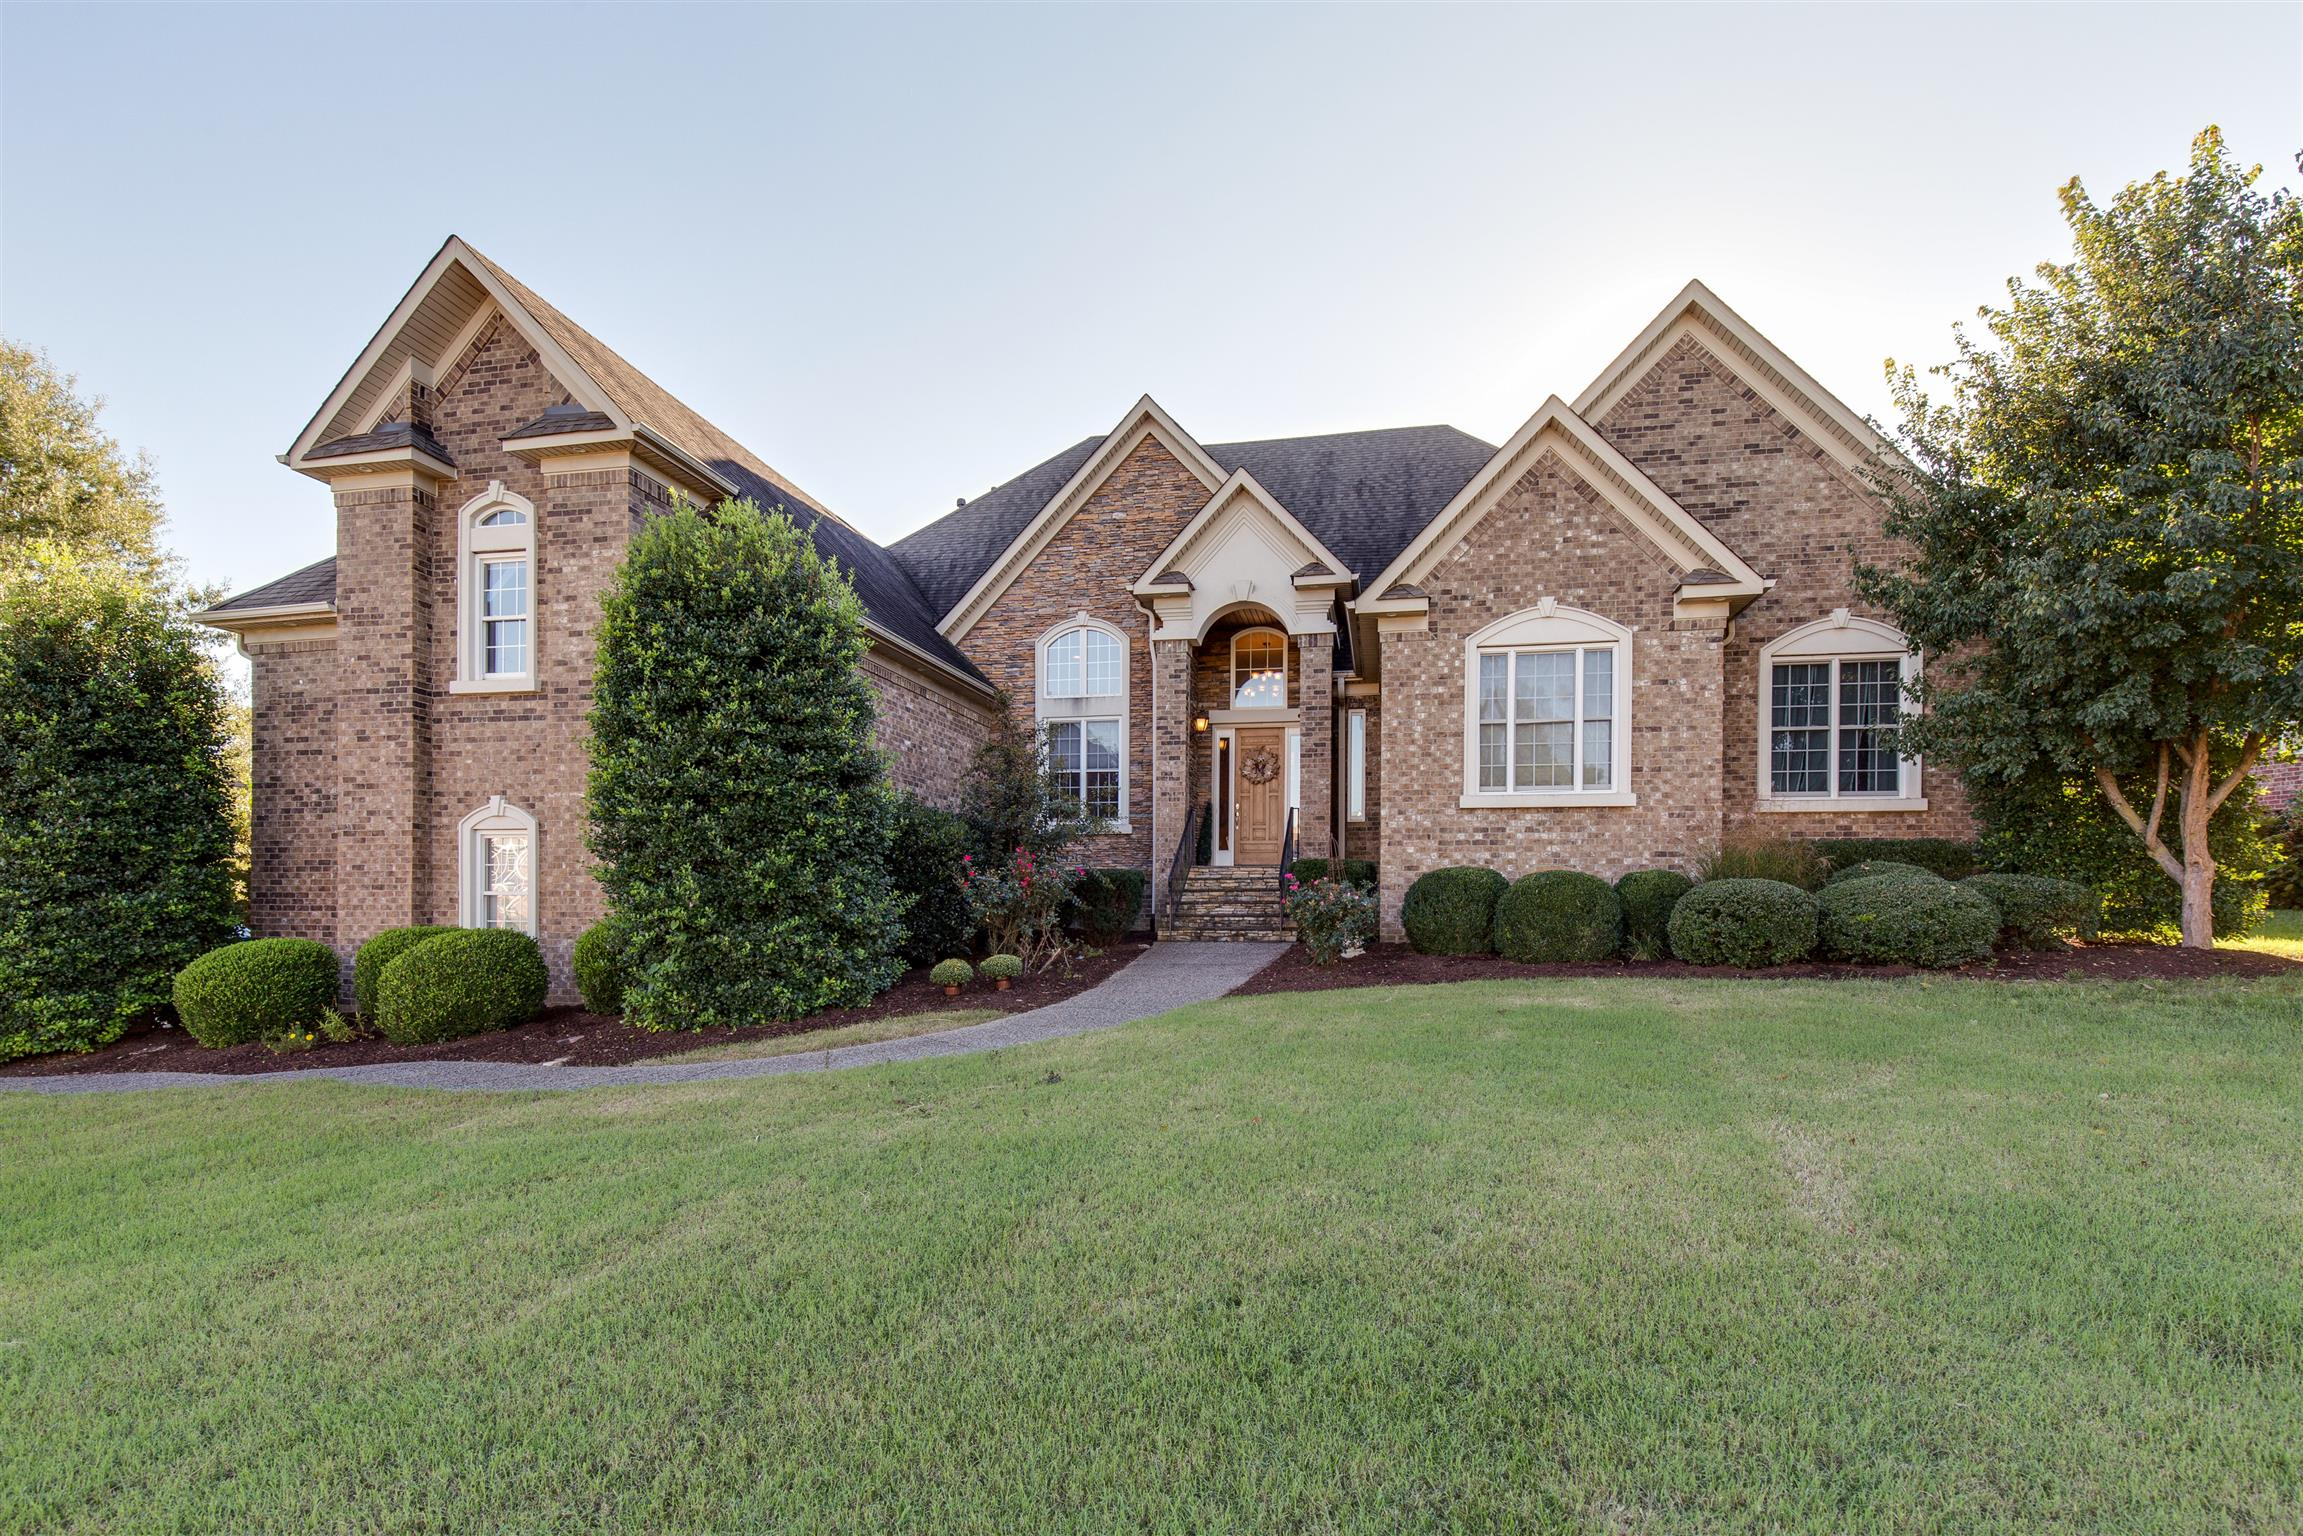 1008 Heathrow Dr, Hendersonville, Tennessee